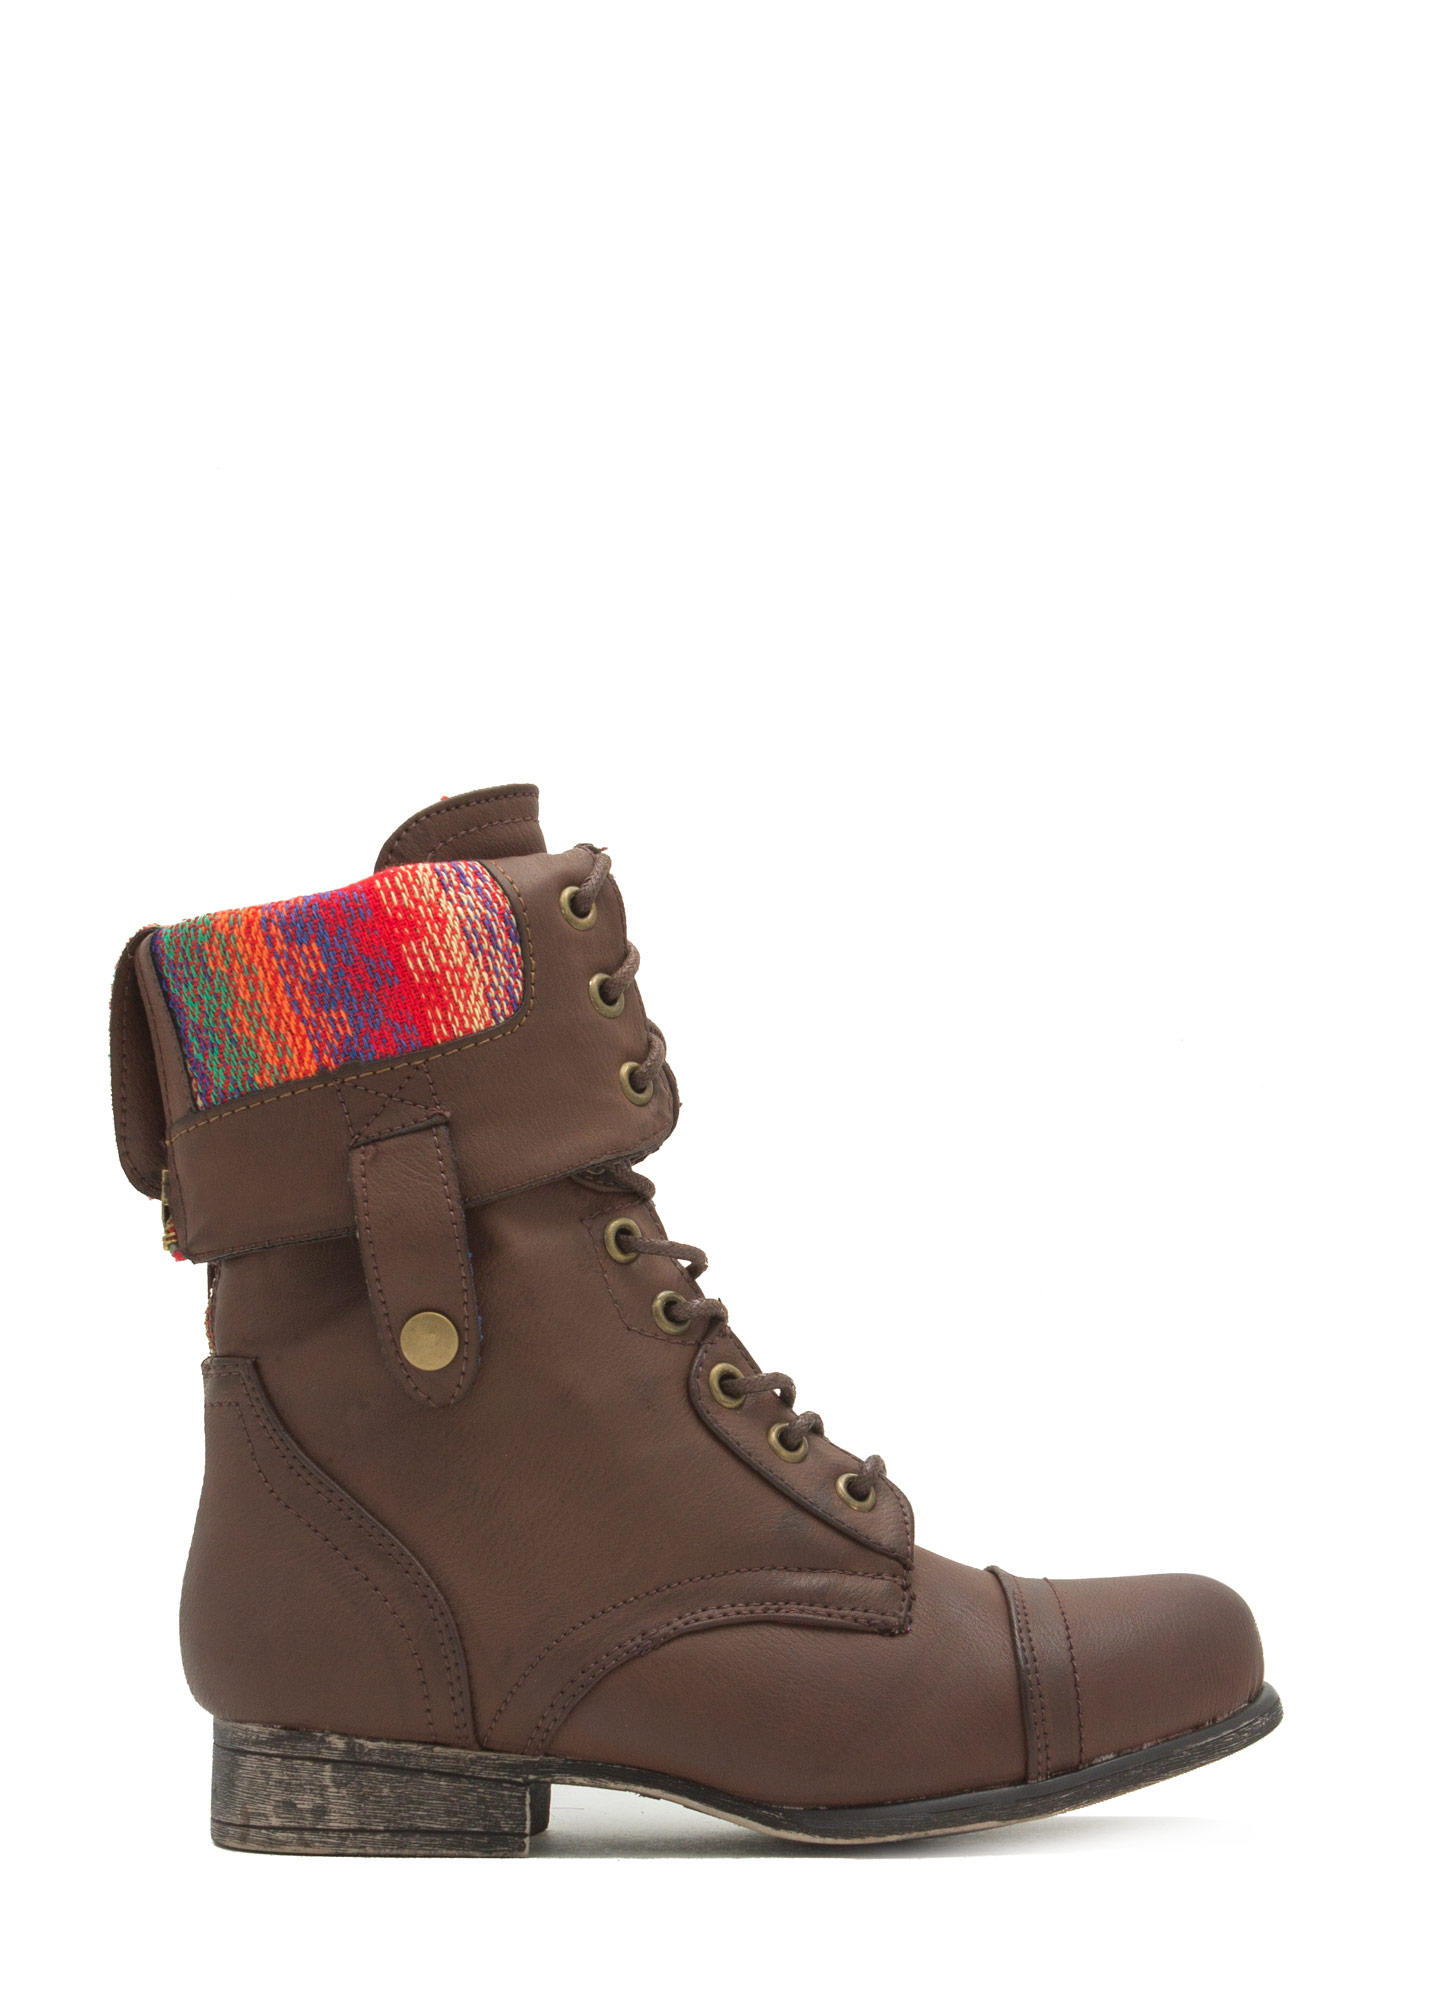 Foldover Lace-Up Combat Boots BROWNRED